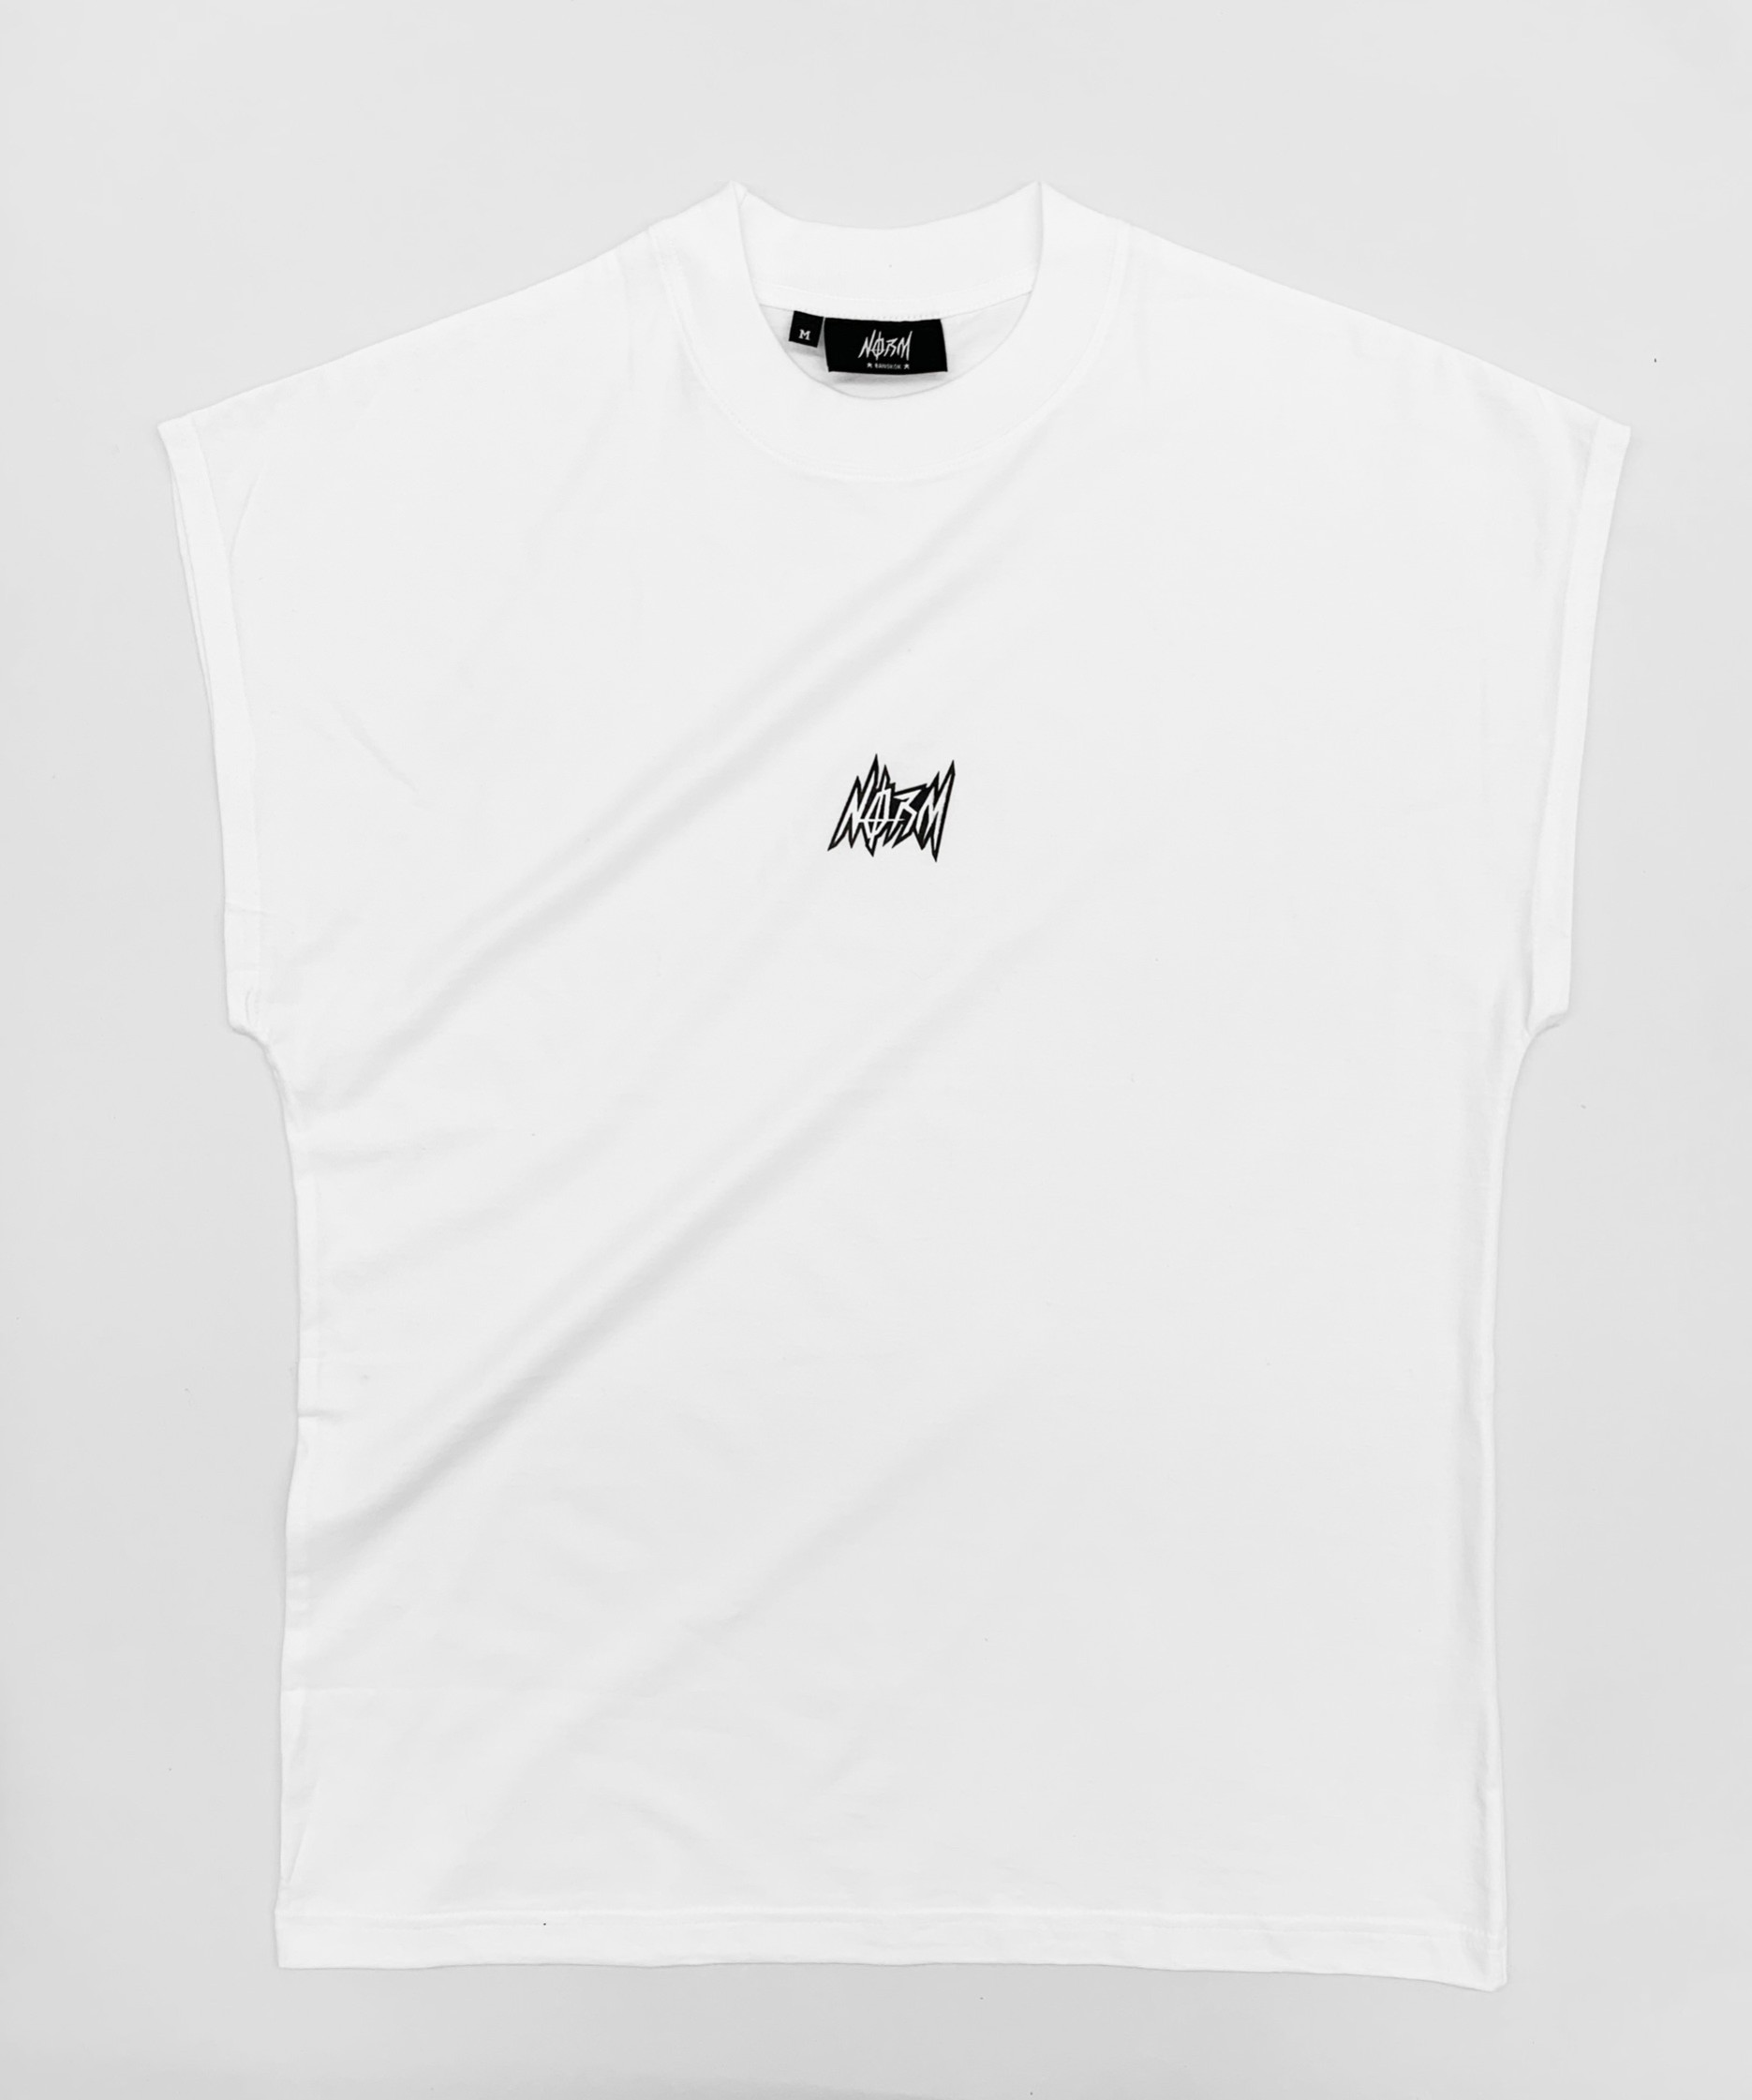 Just Norm - NOS TEE WHITE